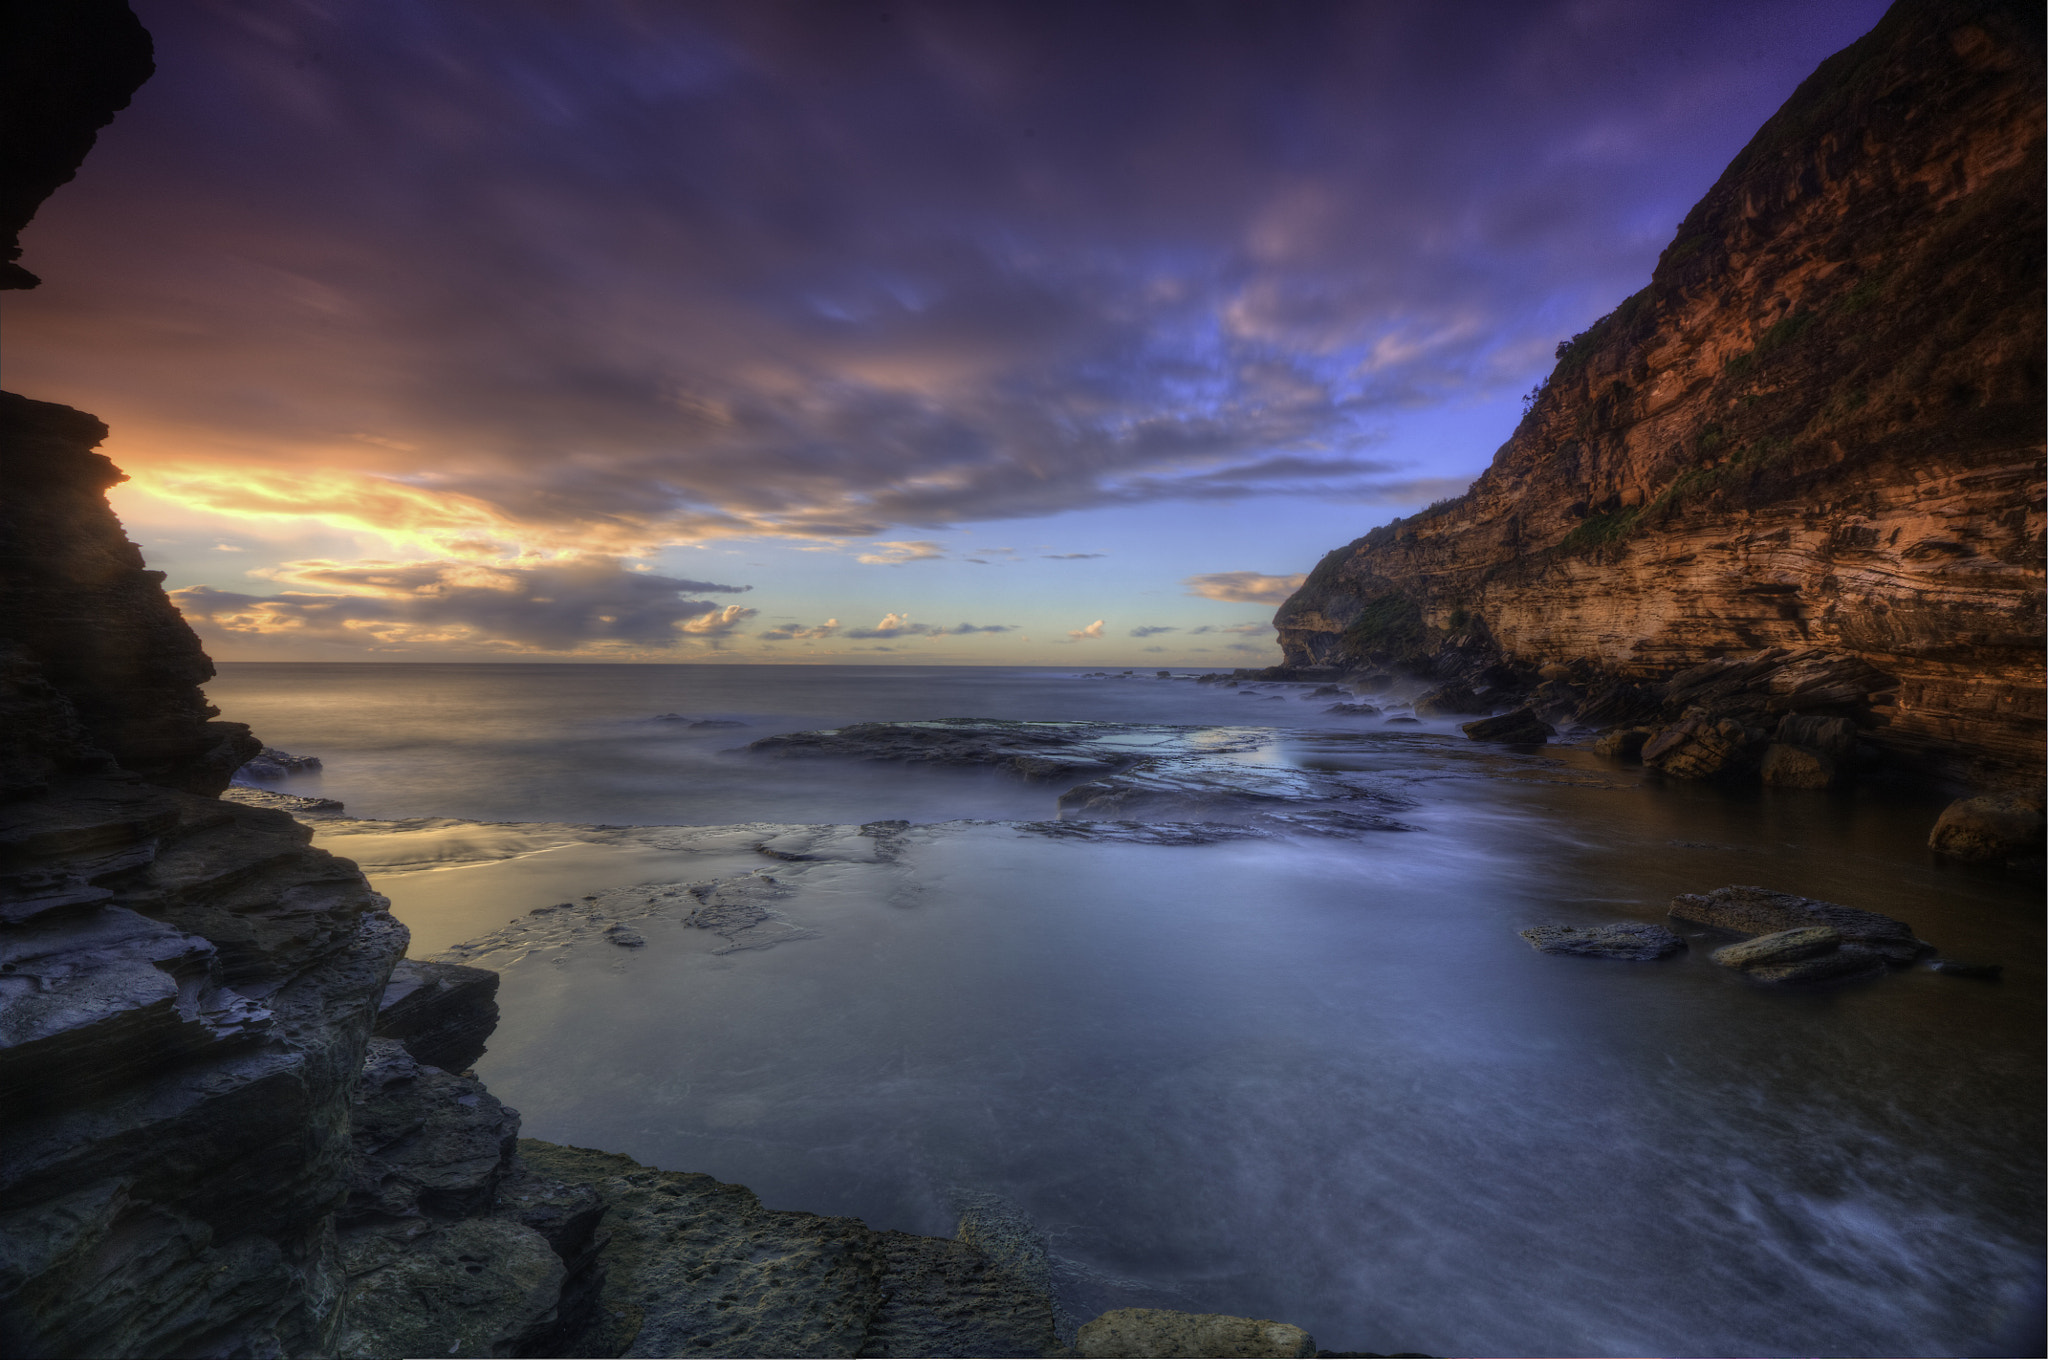 Photograph Dawn at the Canyon by donald Goldney on 500px